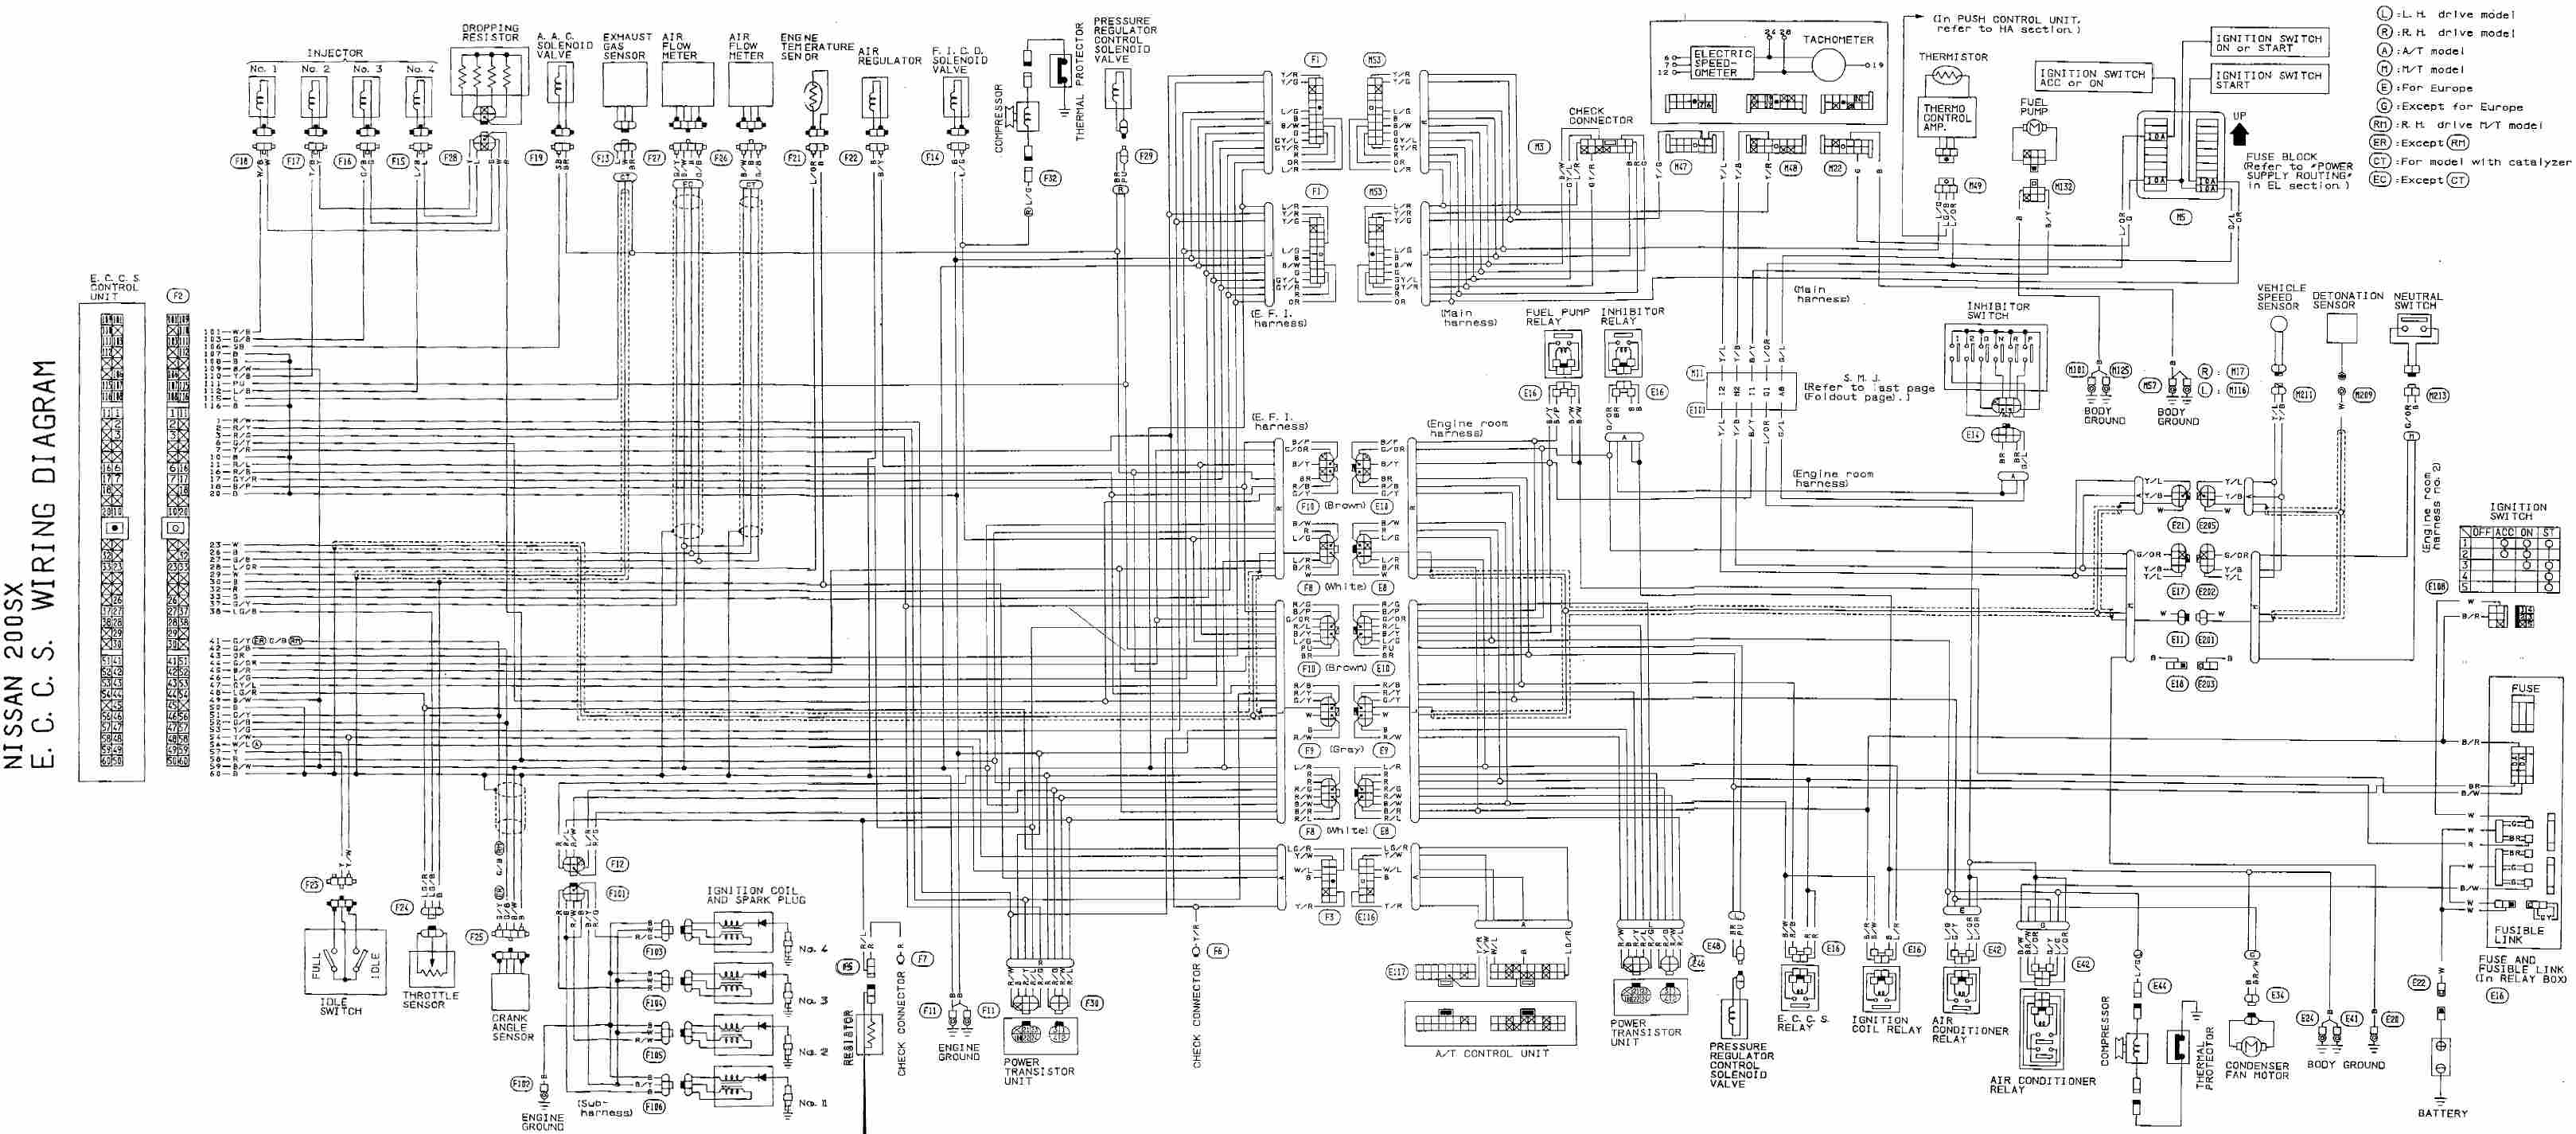 nissan altima 2010 engine diagram trusted wiring diagrams u2022 rh sivamuni com